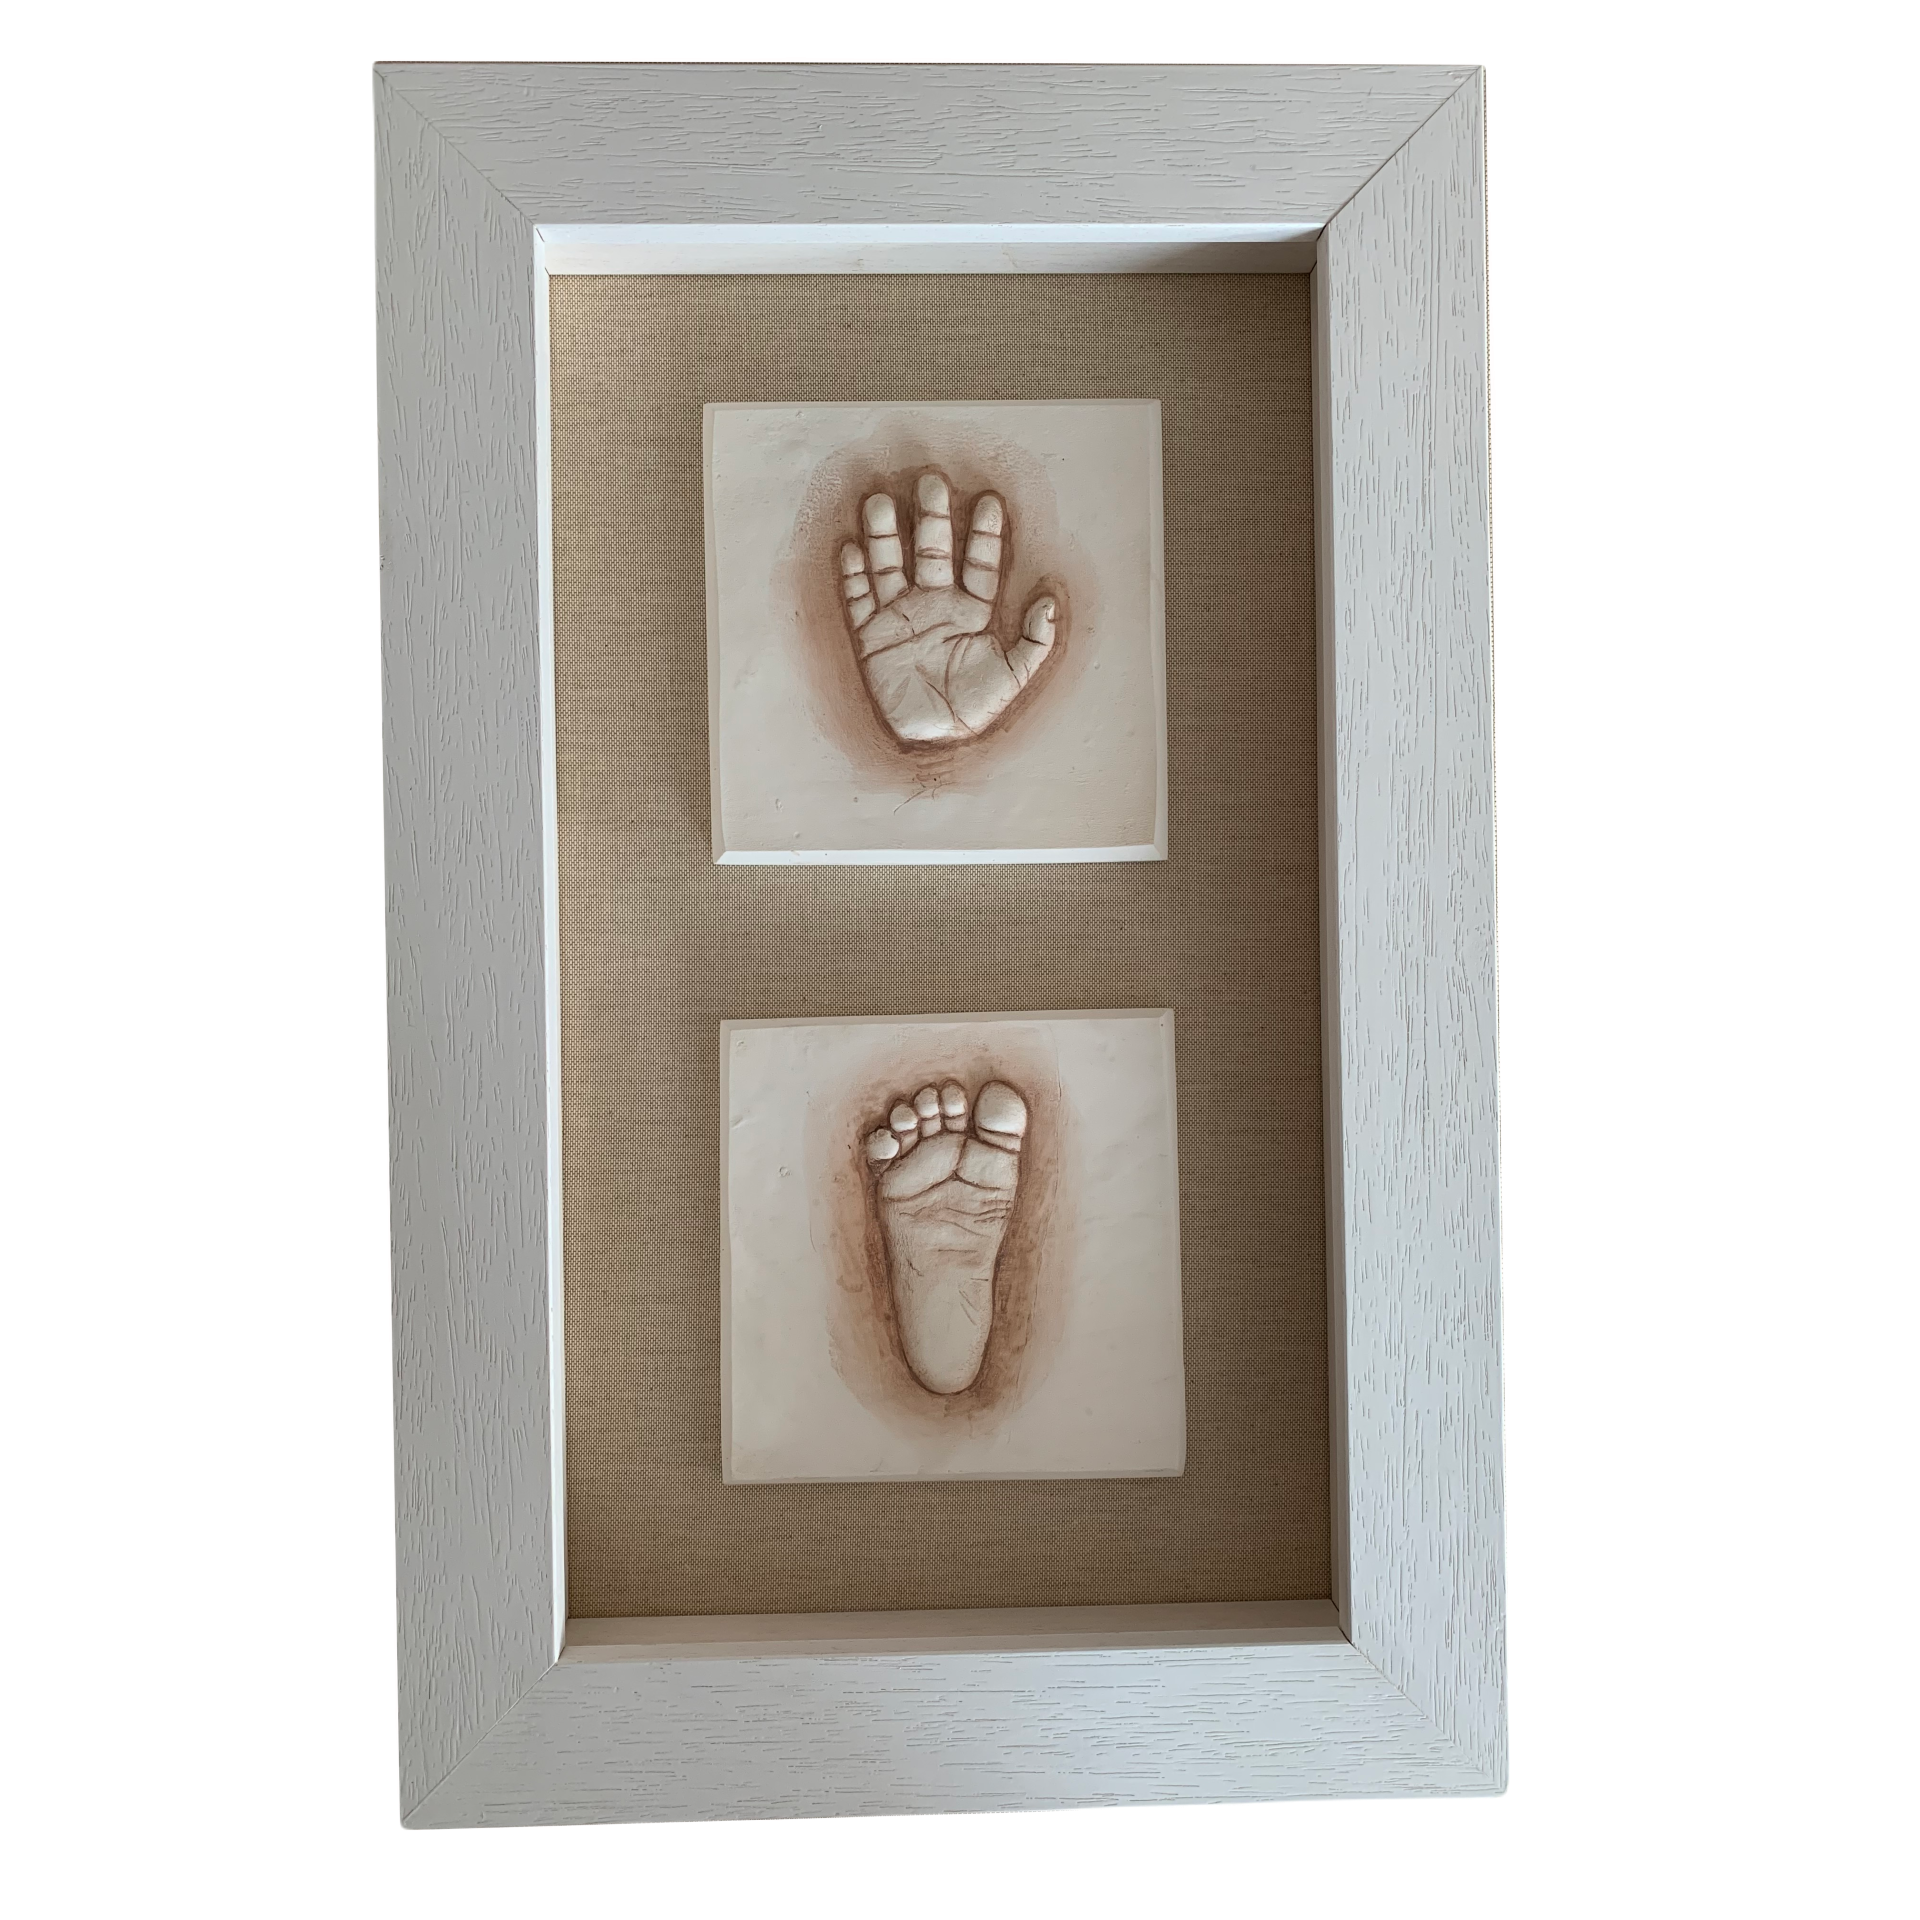 Baby hand and foot impressions in clay mounted in a wooden frame